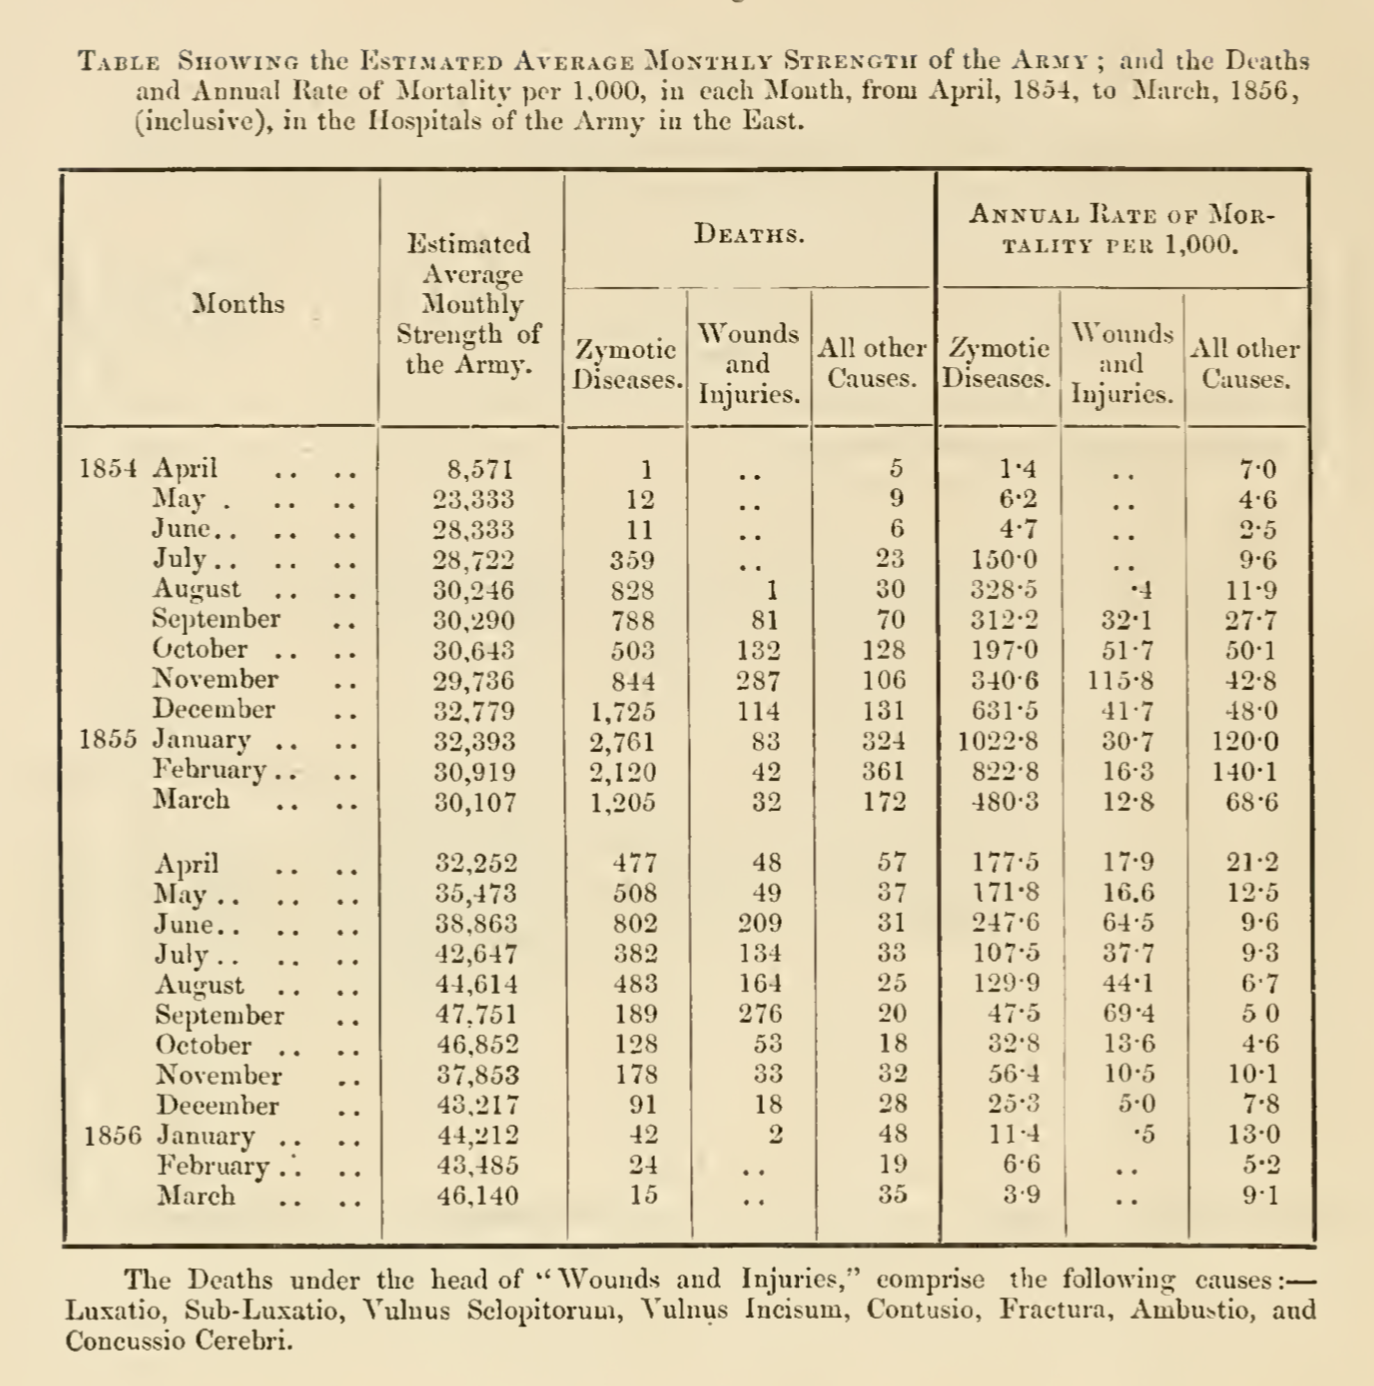 Source: Mortality of the British Army, At Home, At Home and Abroad, and During the Russian War, As Compared with the Mortality of the Civil Population in England. 1858. Harrison and Sons, St. Martin's Lane. [ Link ] [Accessed September 11, 2019].